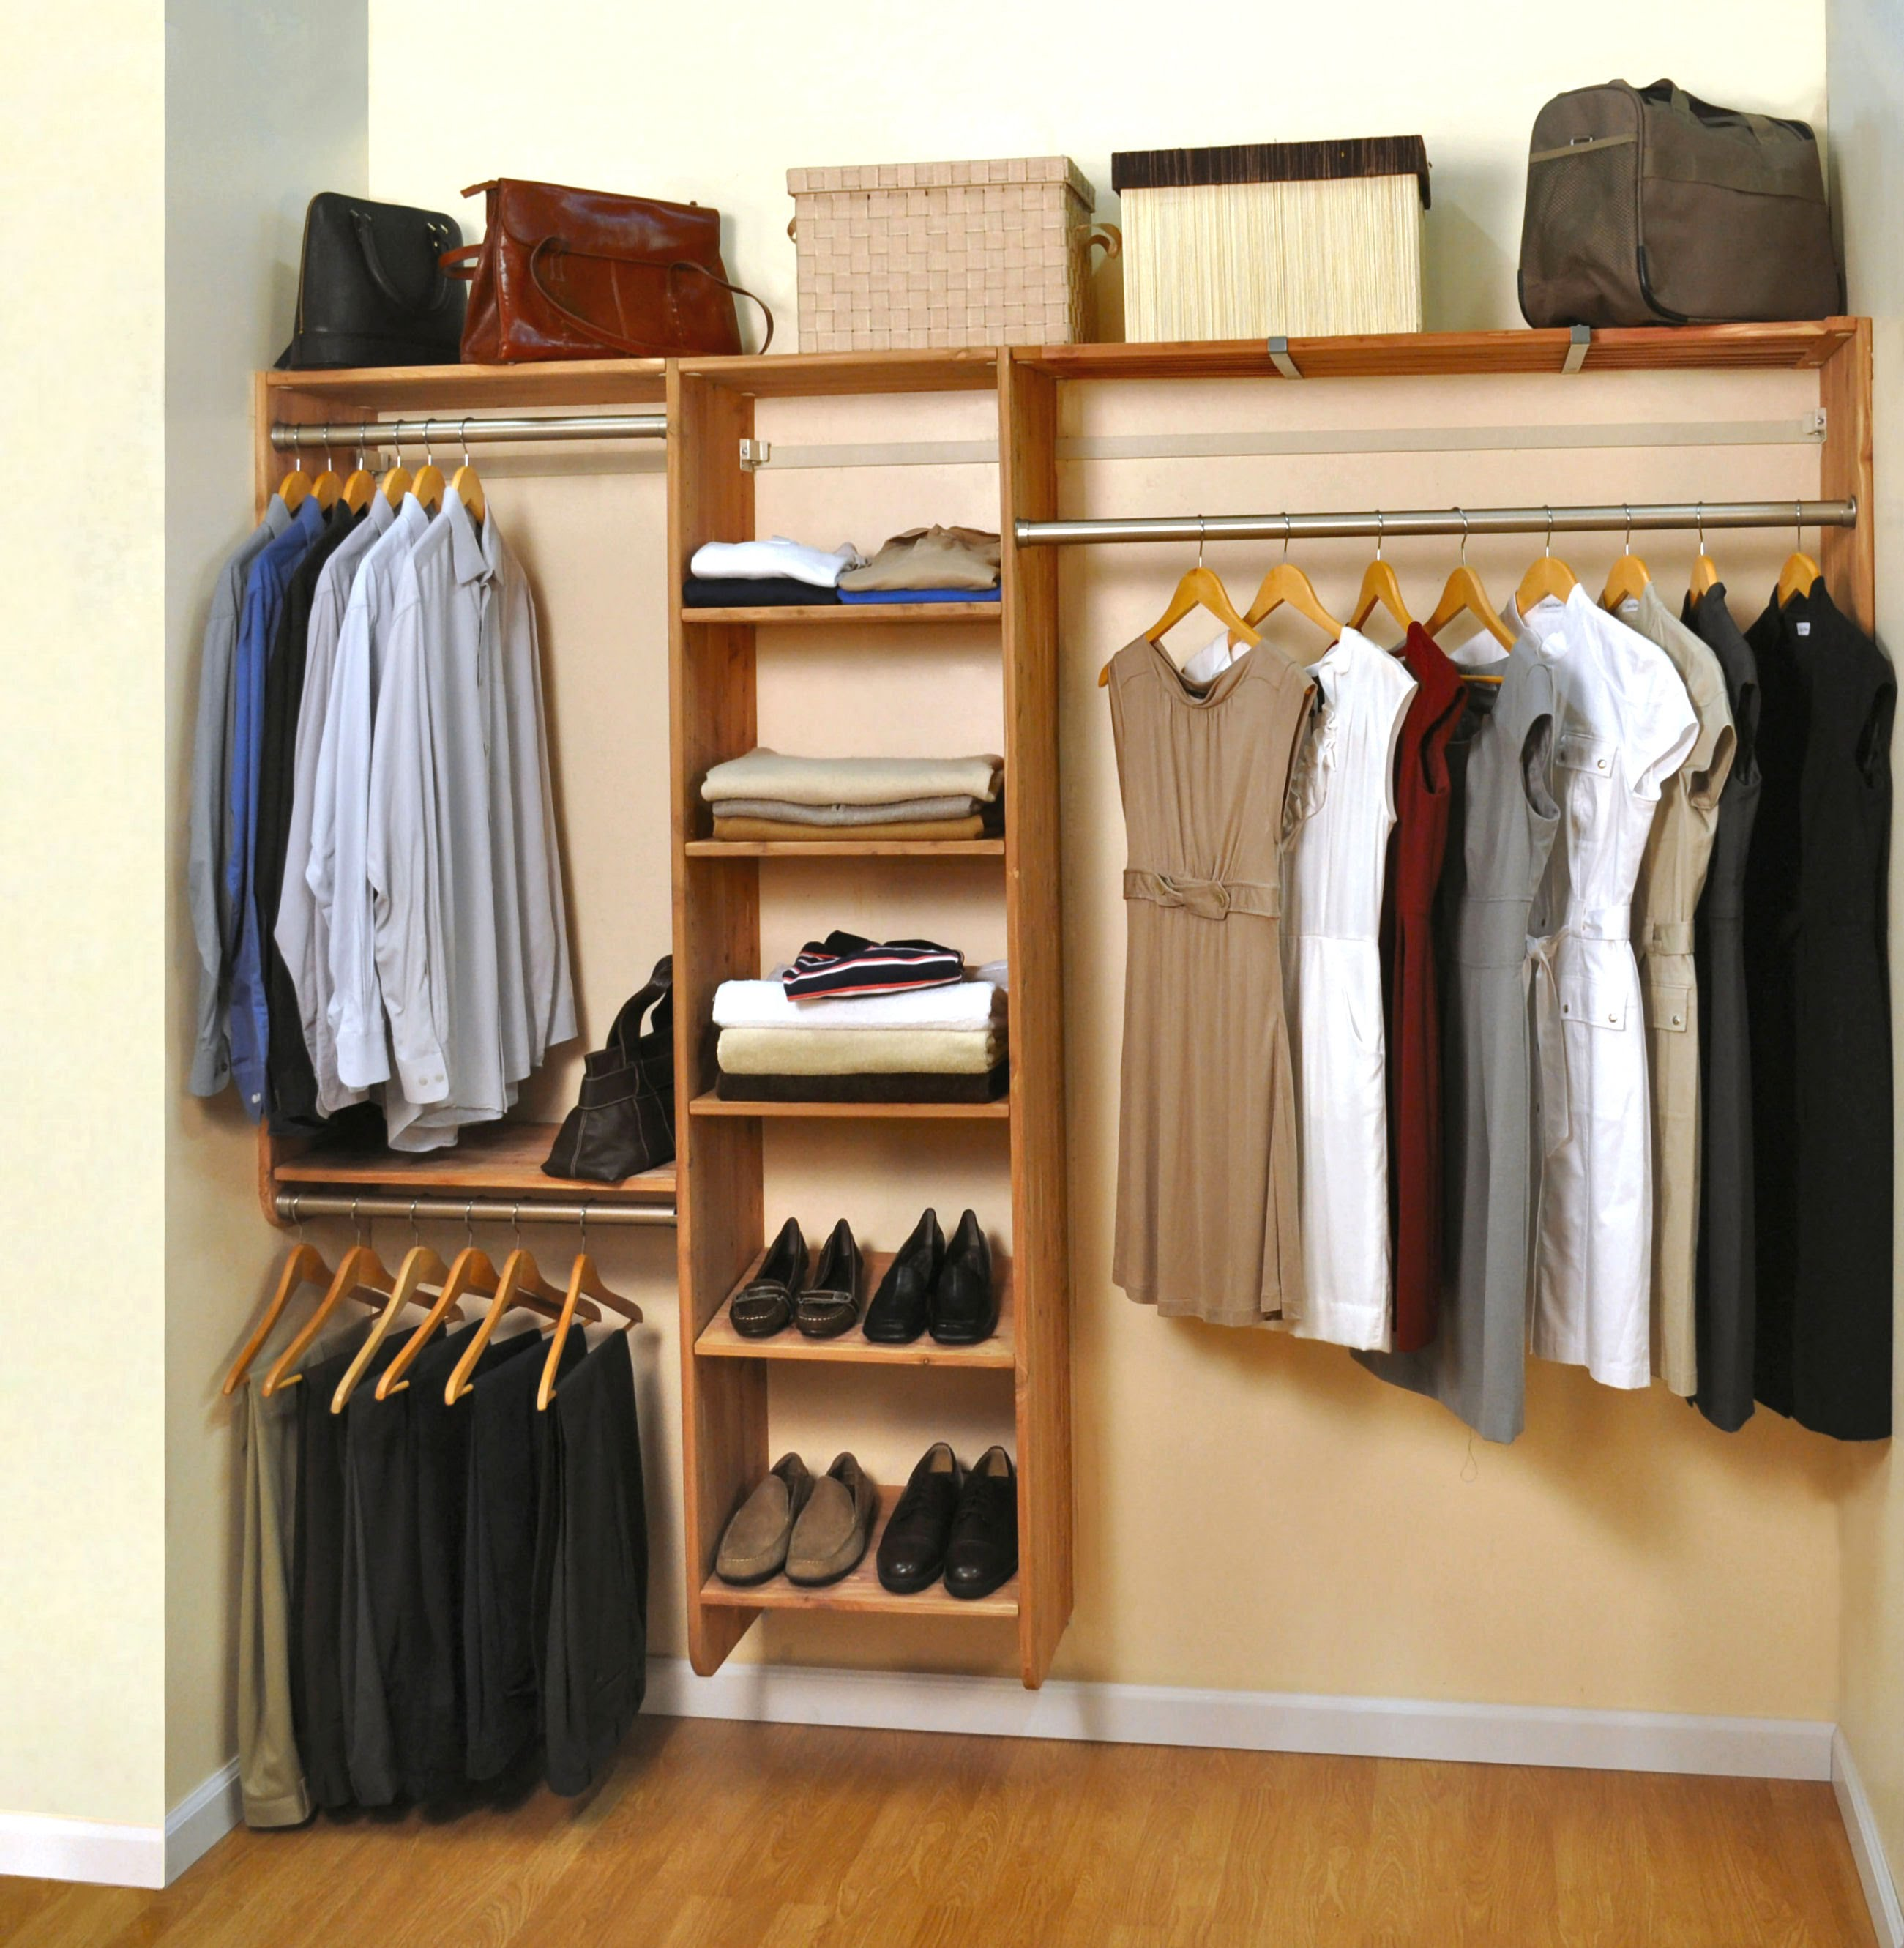 Inspiring Storage System Design Ideas with Cedar Closet Kit: Cedar Closet Home Depot | Tongue And Groove Cedar Closet | Cedar Closet Kit